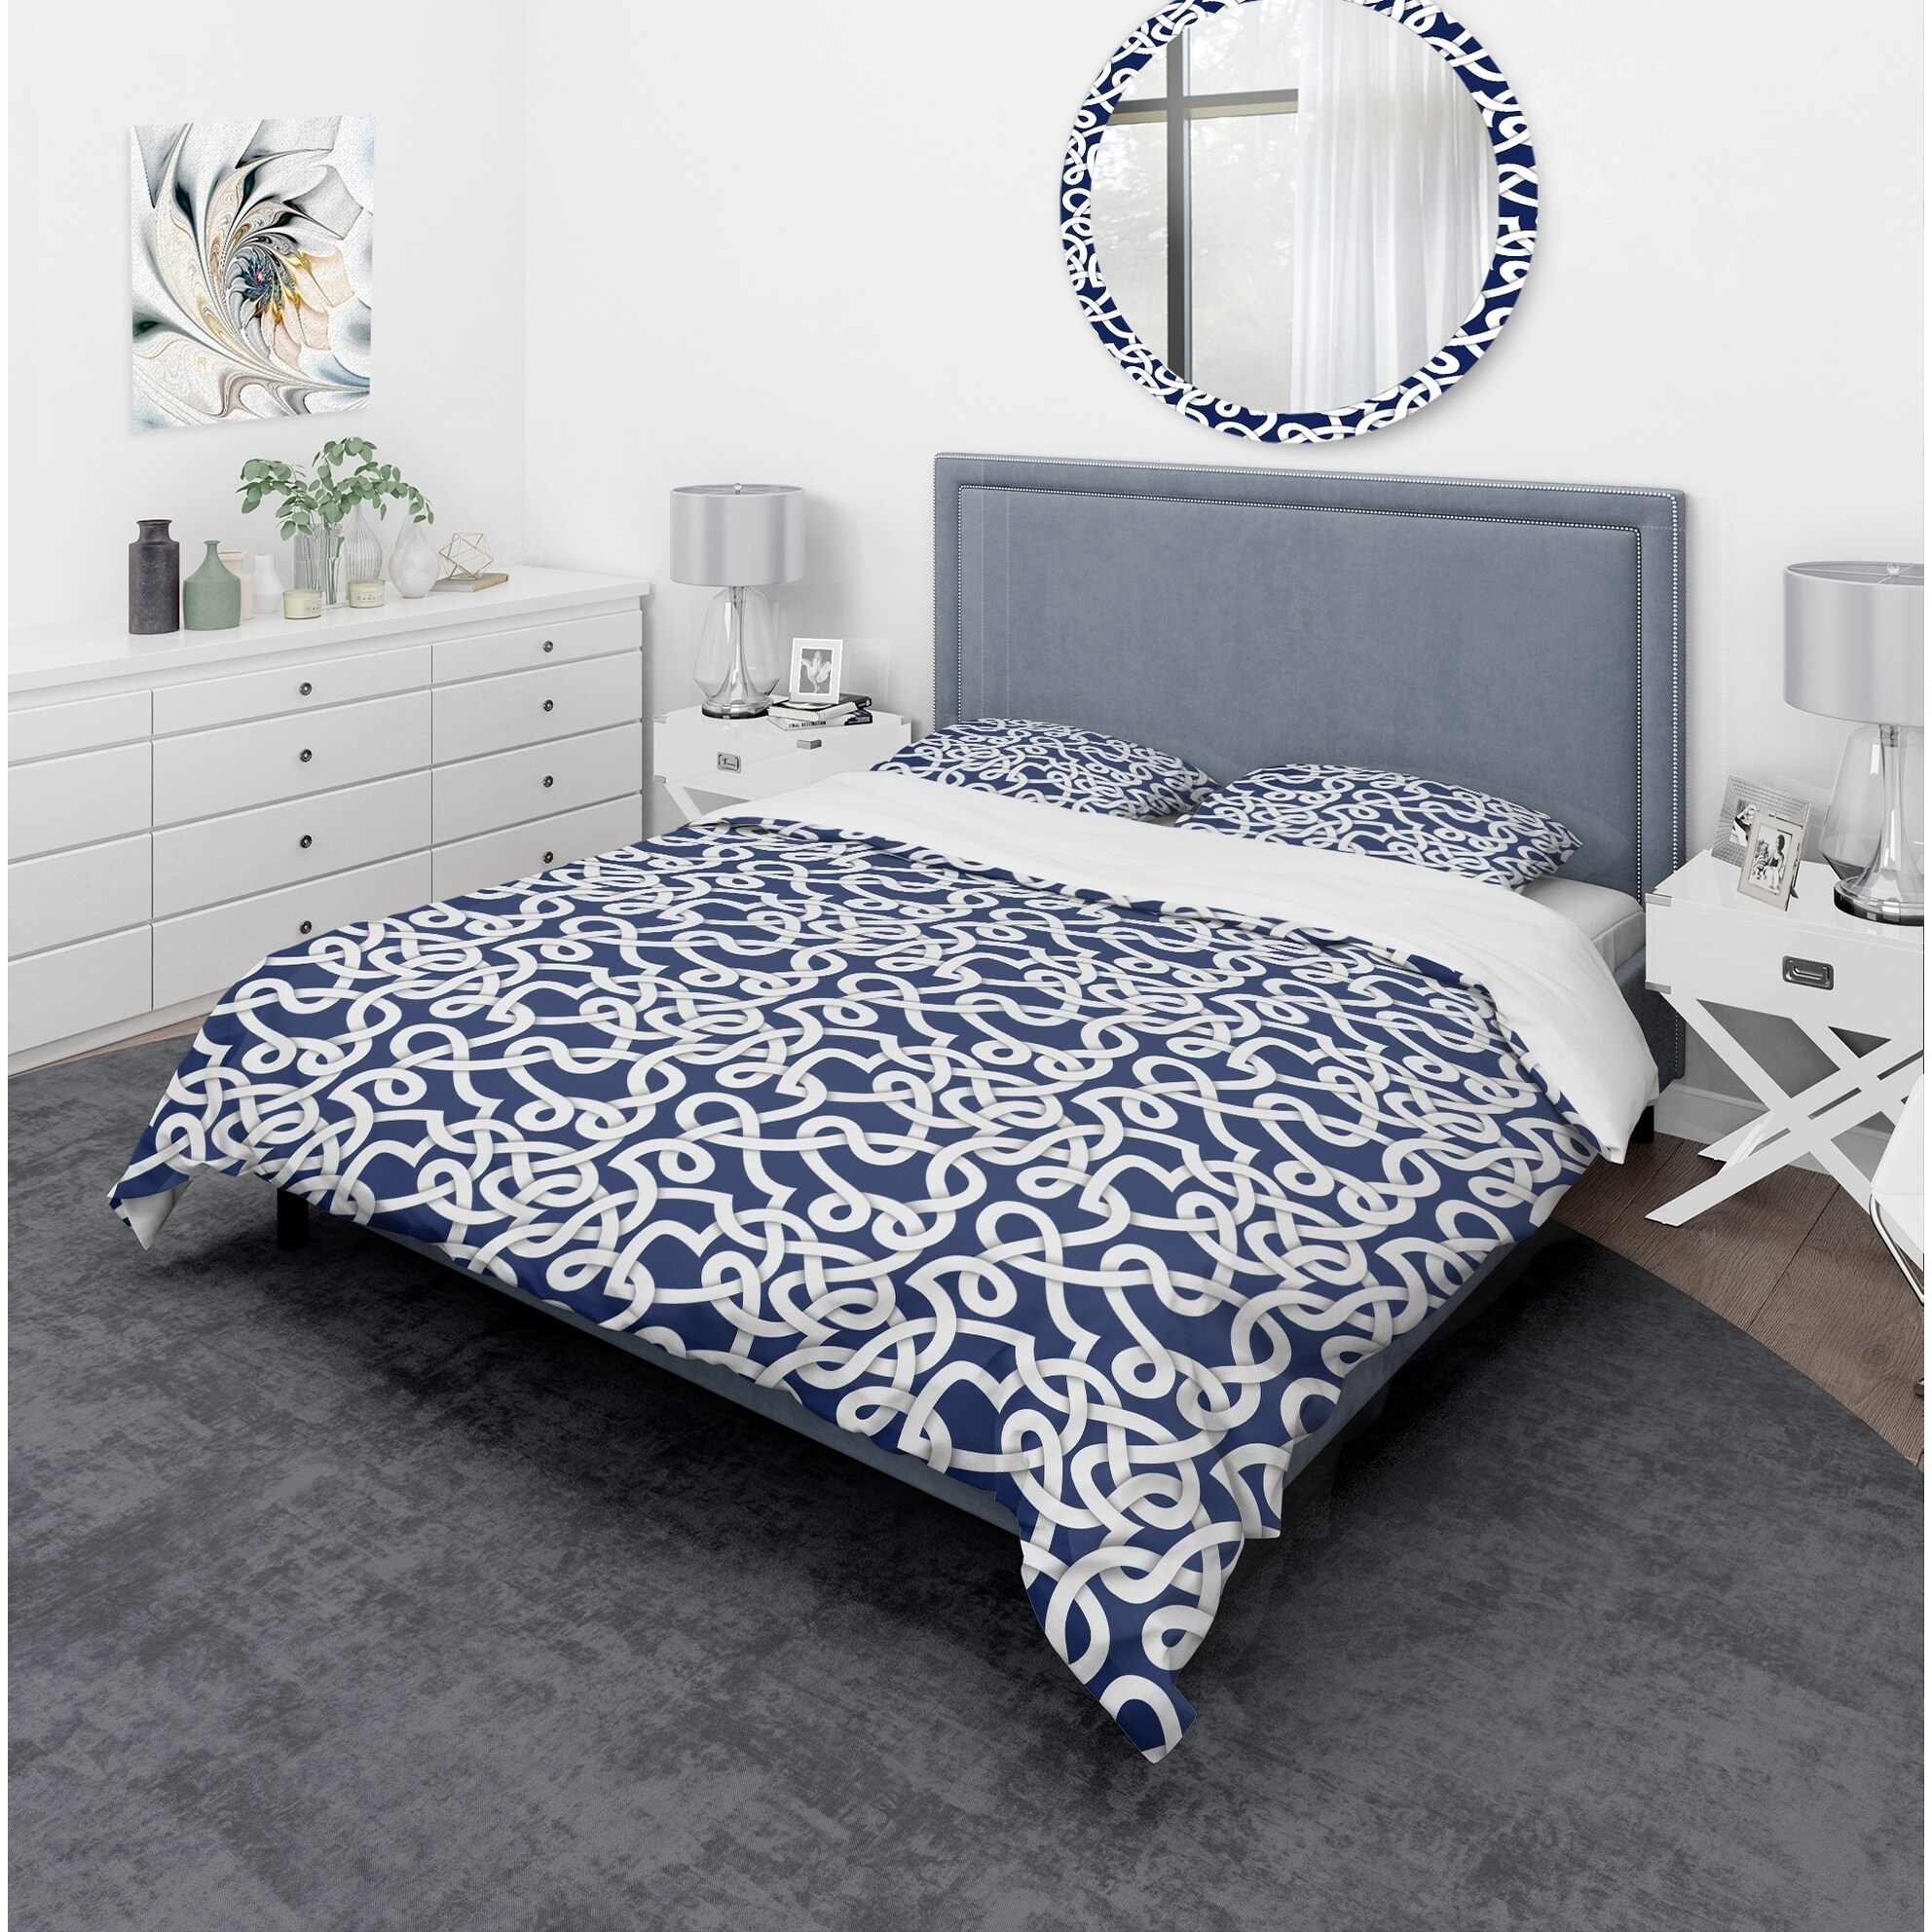 Modern Duvet Details About Designart White Blue Abstract Pattern Mid Century Modern Duvet Cover Set